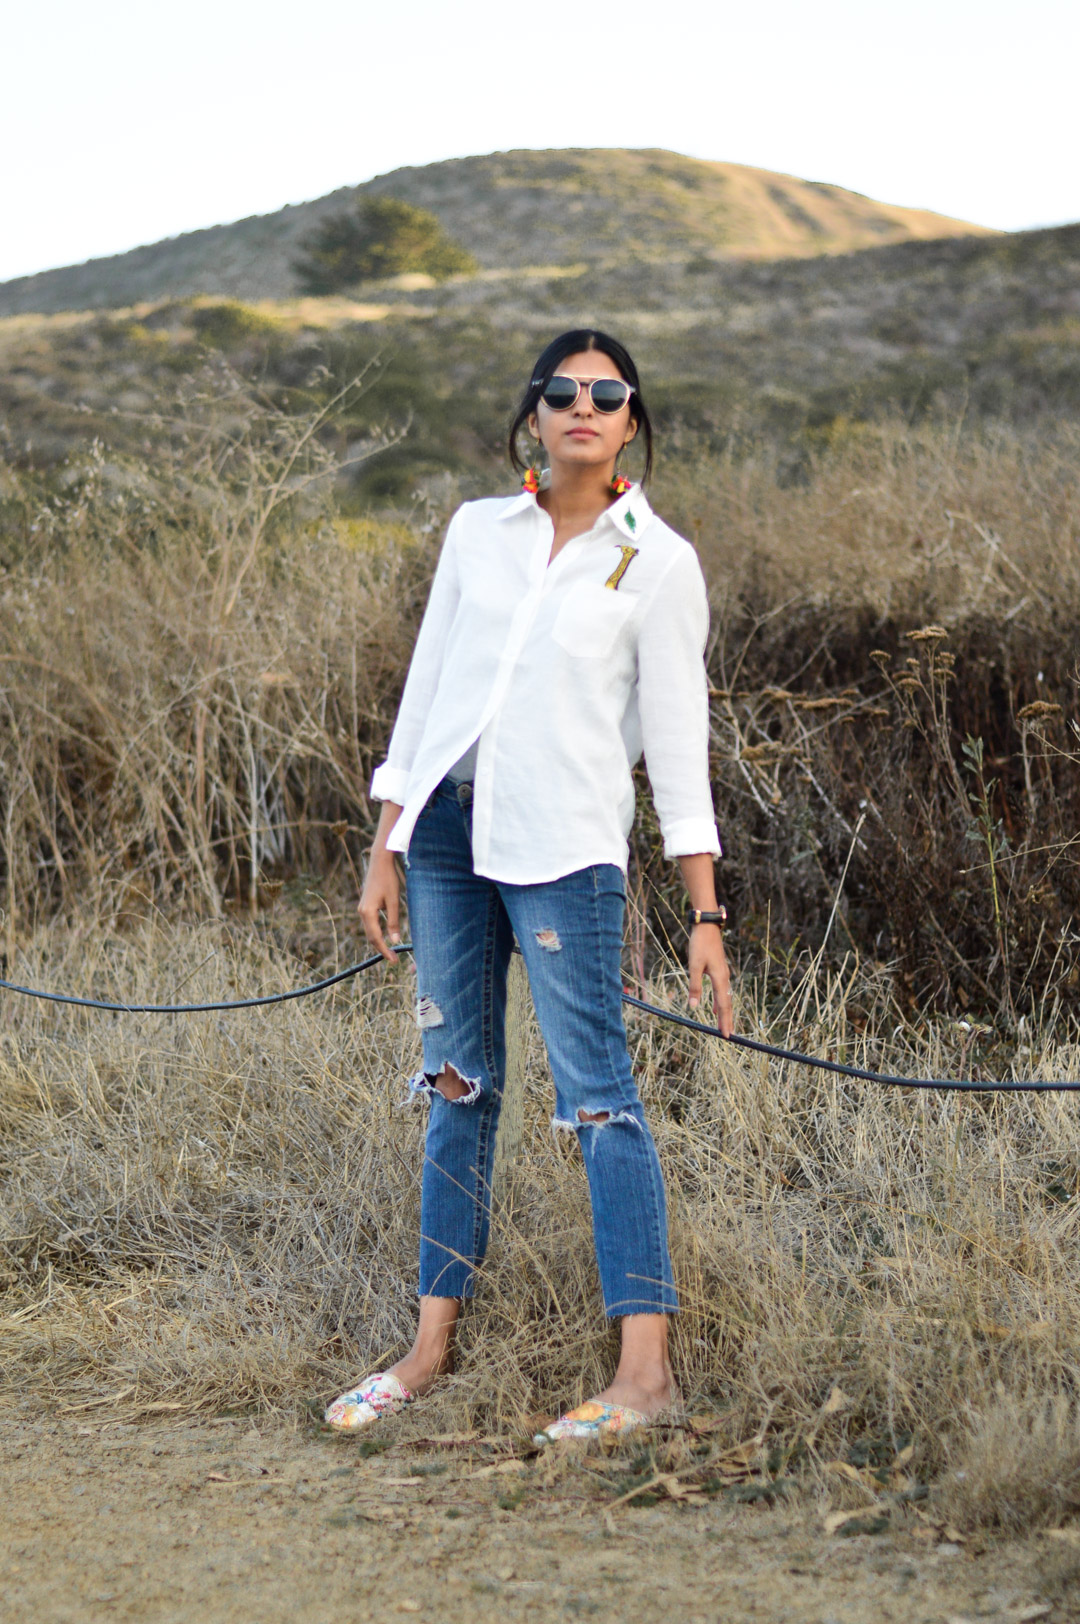 indian-summer-embroidered-white-shirt-statement-accessories-blogger-outfit 7